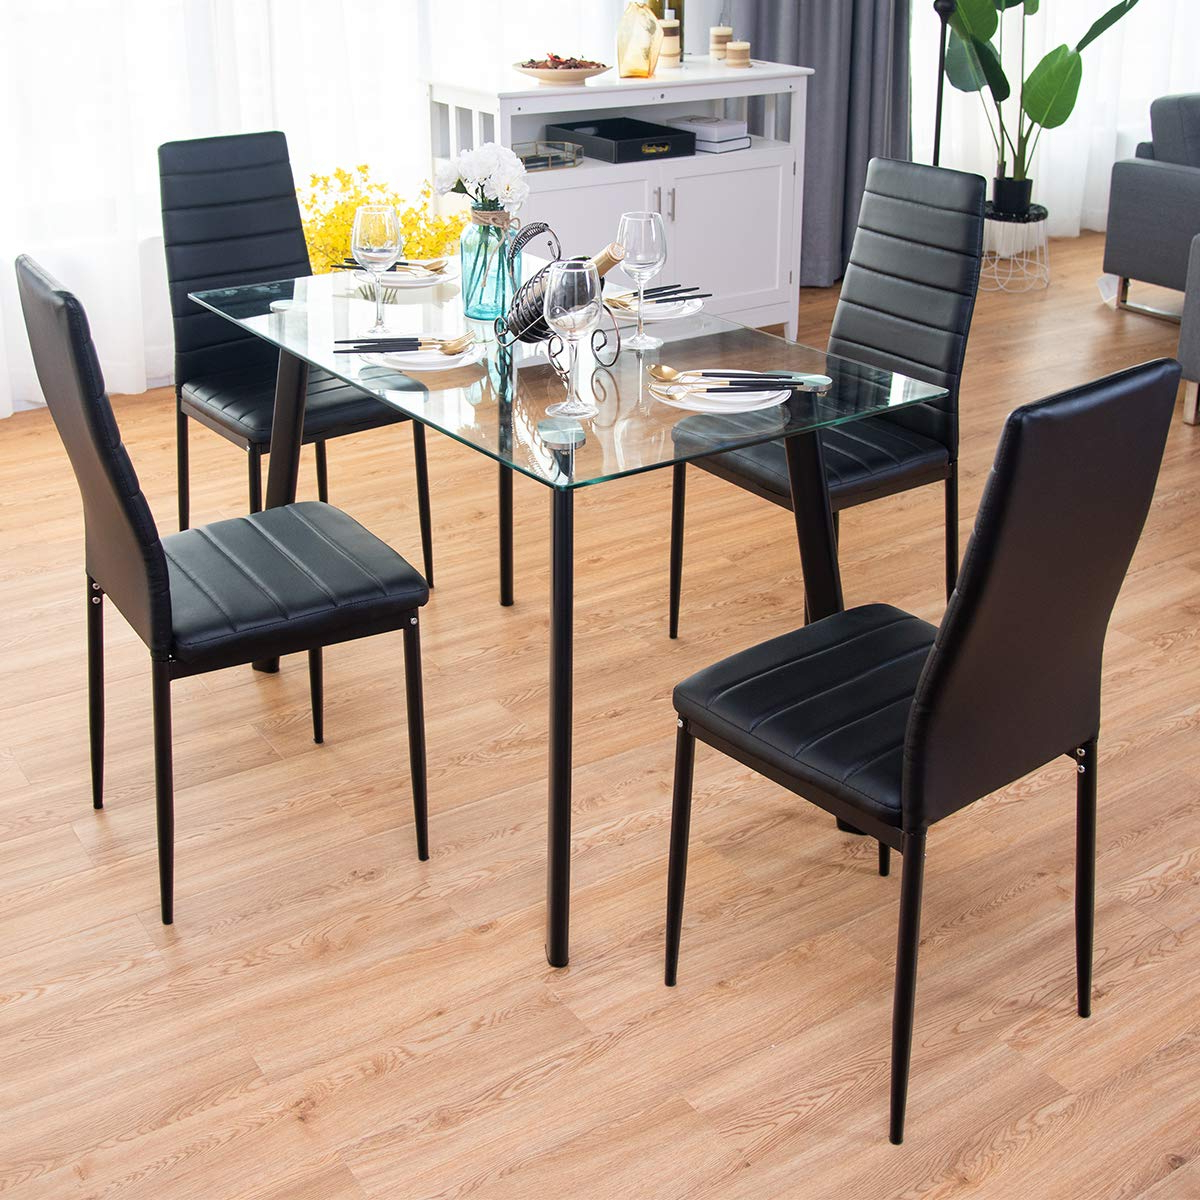 Newest Rossi 5 Piece Dining Sets Pertaining To Tangkula 5 Pcs Dining Table Set Modern Tempered Glass Top And Pvc Leather Chair W/4 Chairs Dining Room Kitchen Furniture (black) (View 19 of 20)